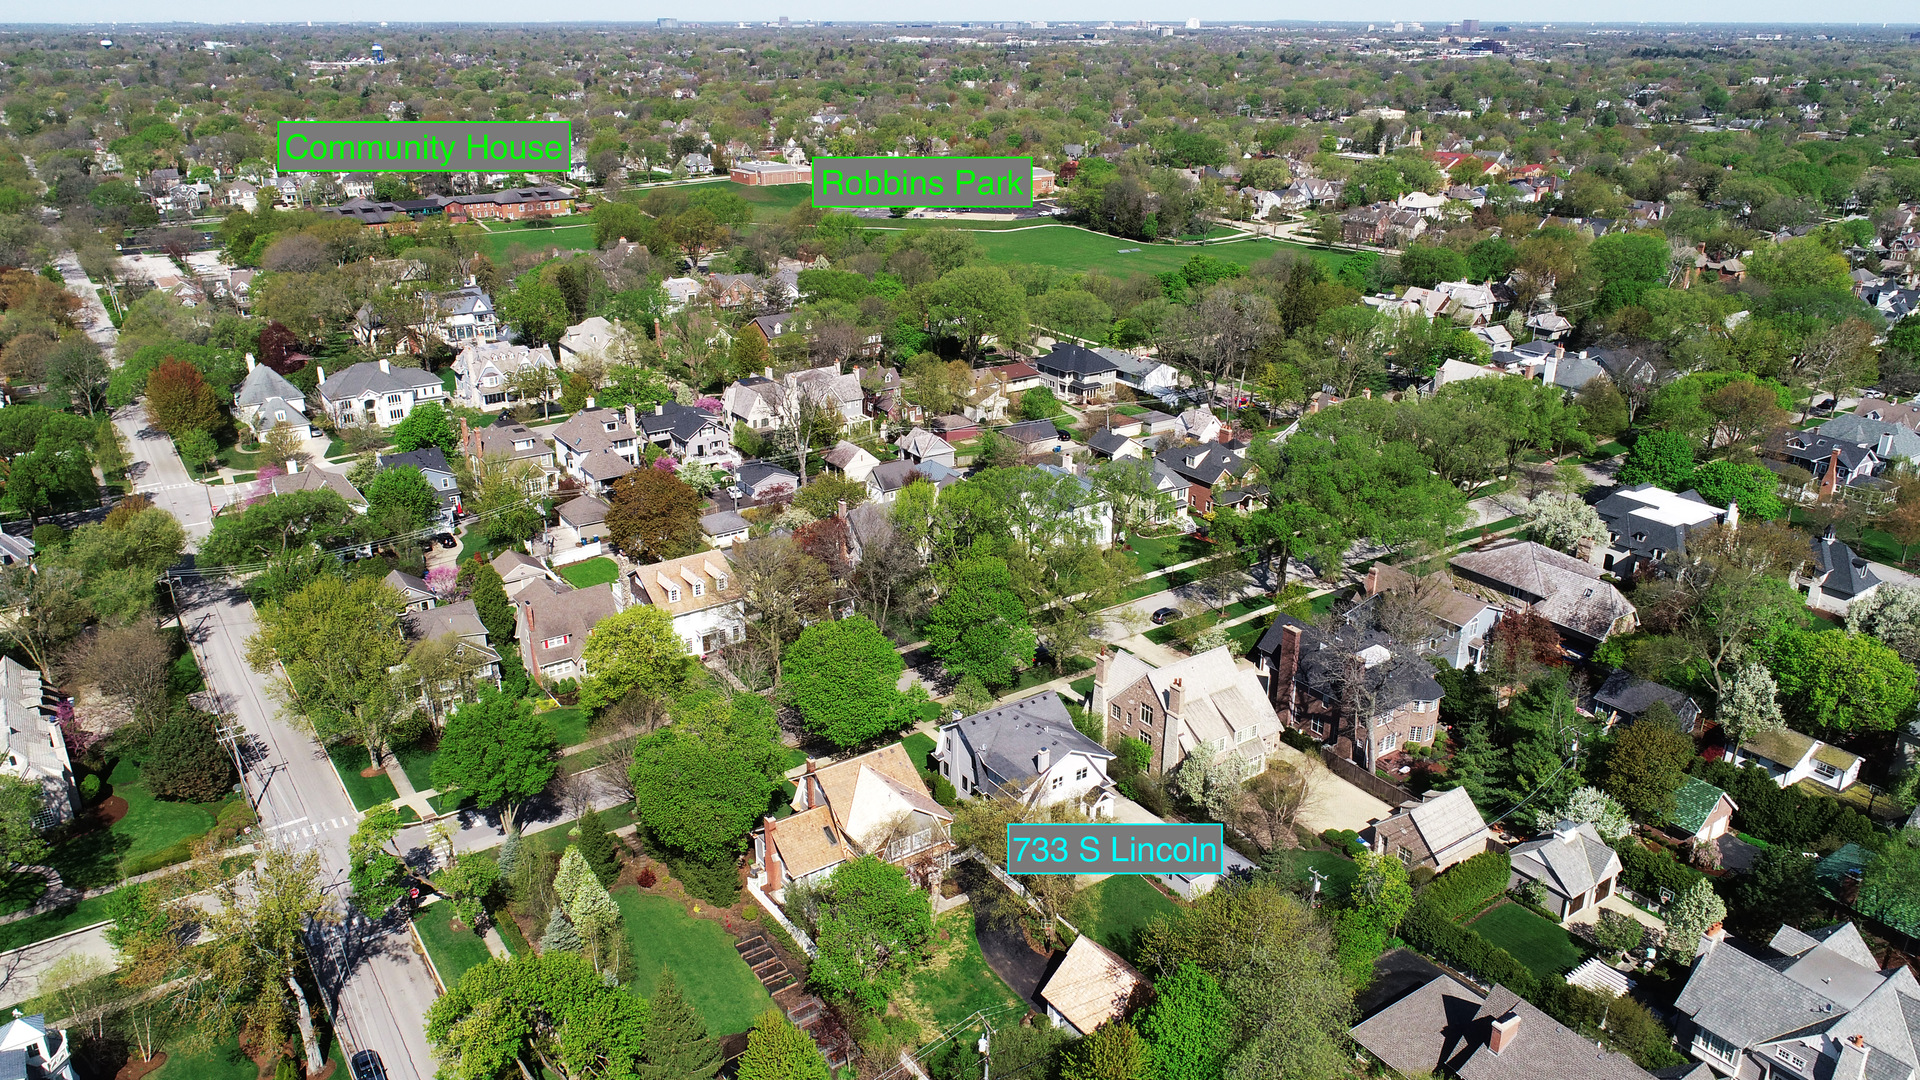 733 South Lincoln, Hinsdale, Illinois, 60521